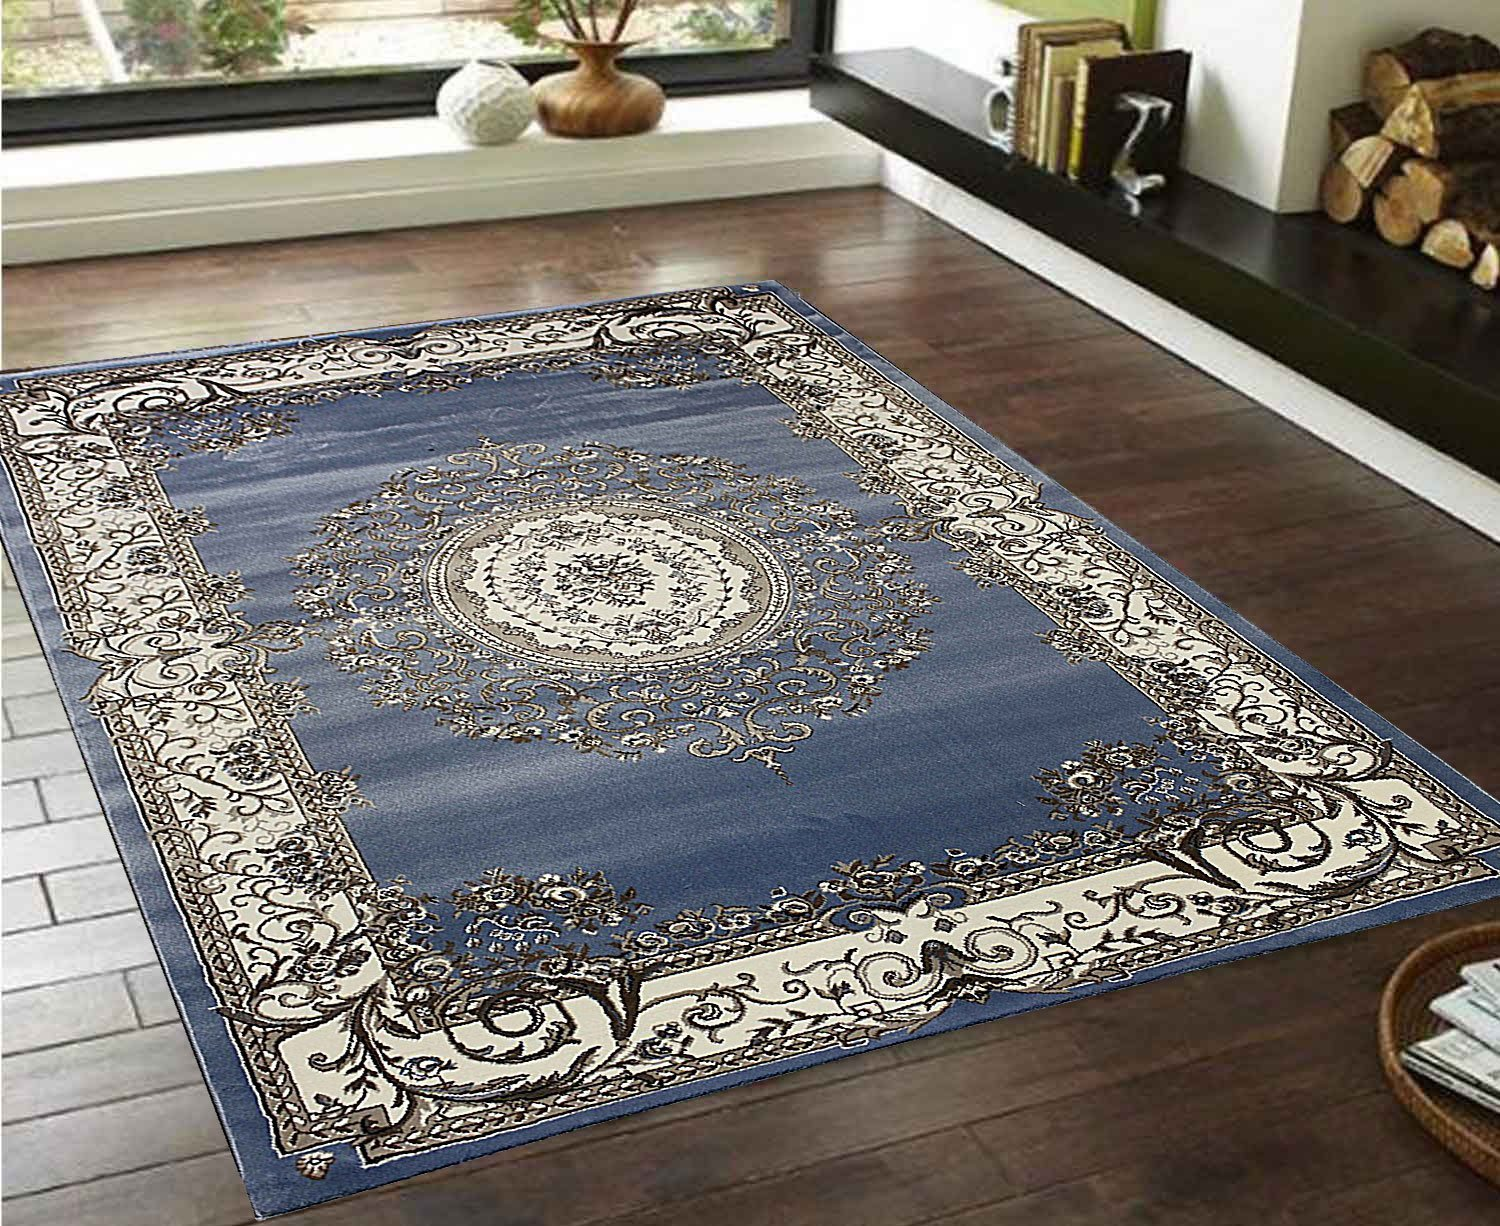 Get Quotations LA Rug Linens Persian Elegance Light Blue Sly White Cream Brown Black Classic Traditional